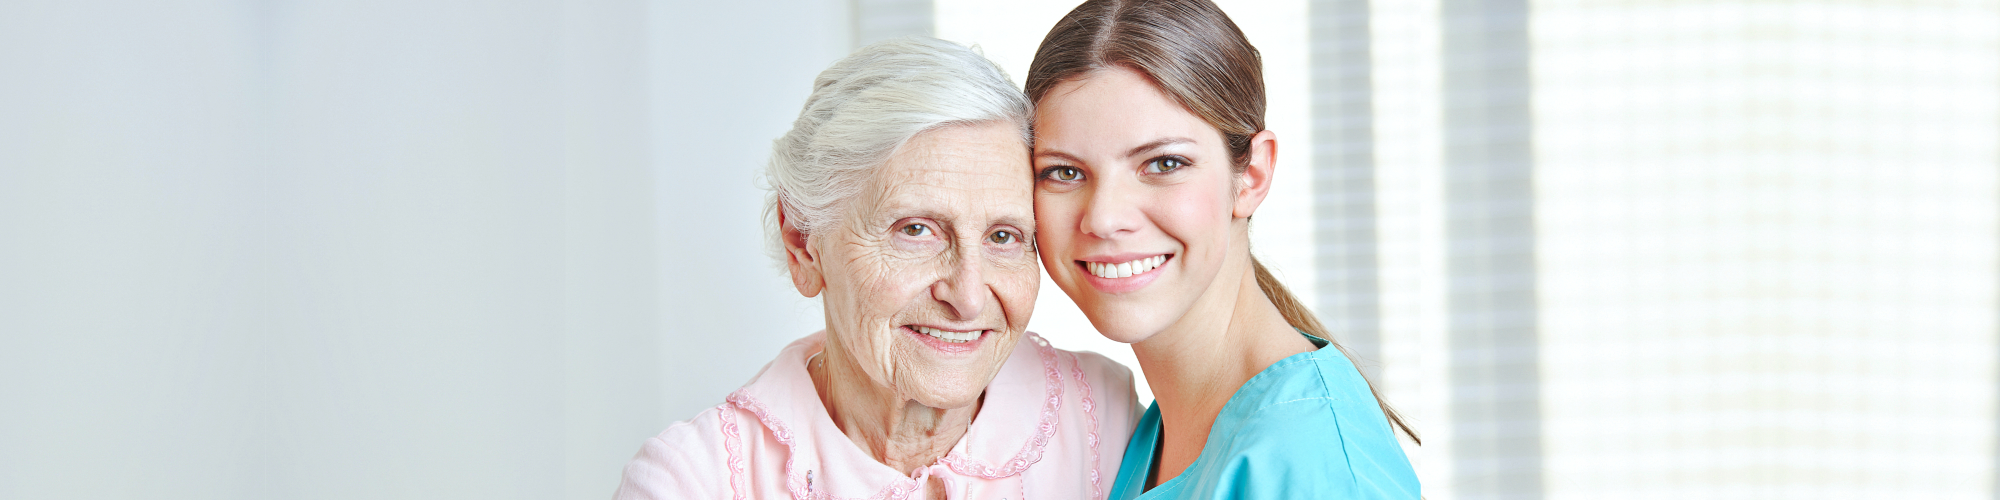 caregiver with senior woman